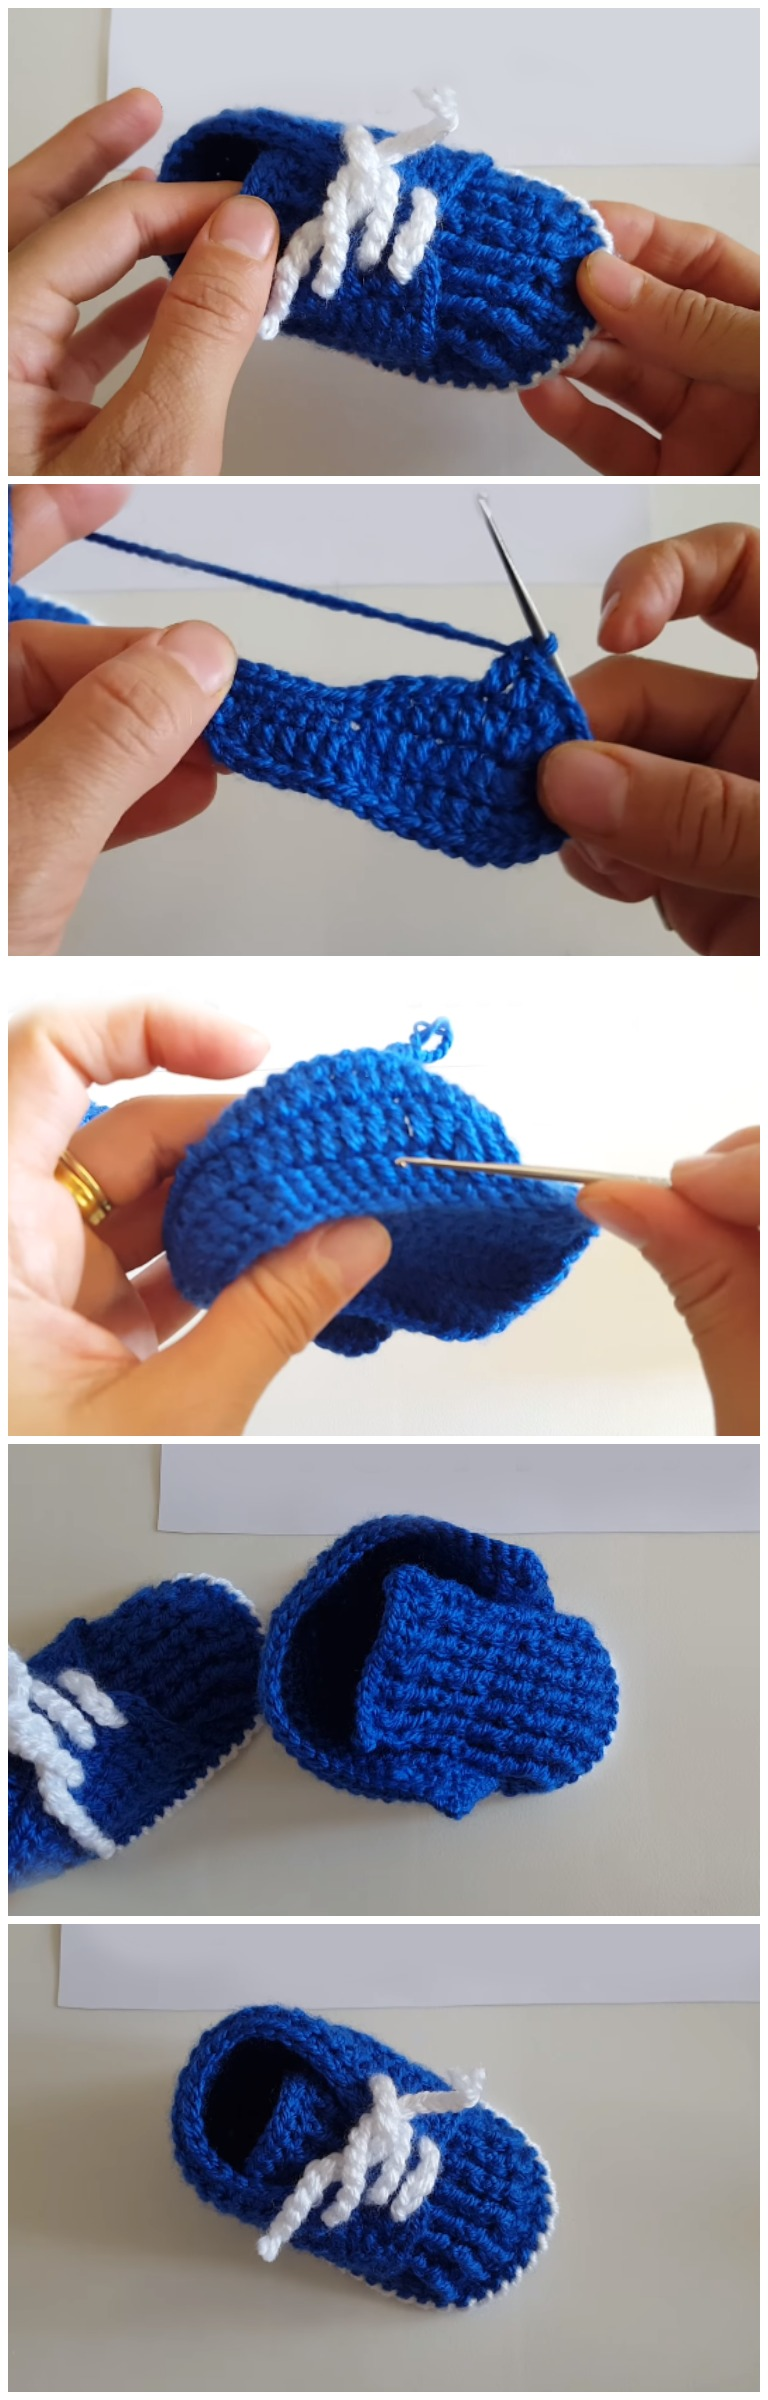 Easy And Beautiful Baby Booties Free Pattern [Video] - ilove-crochet